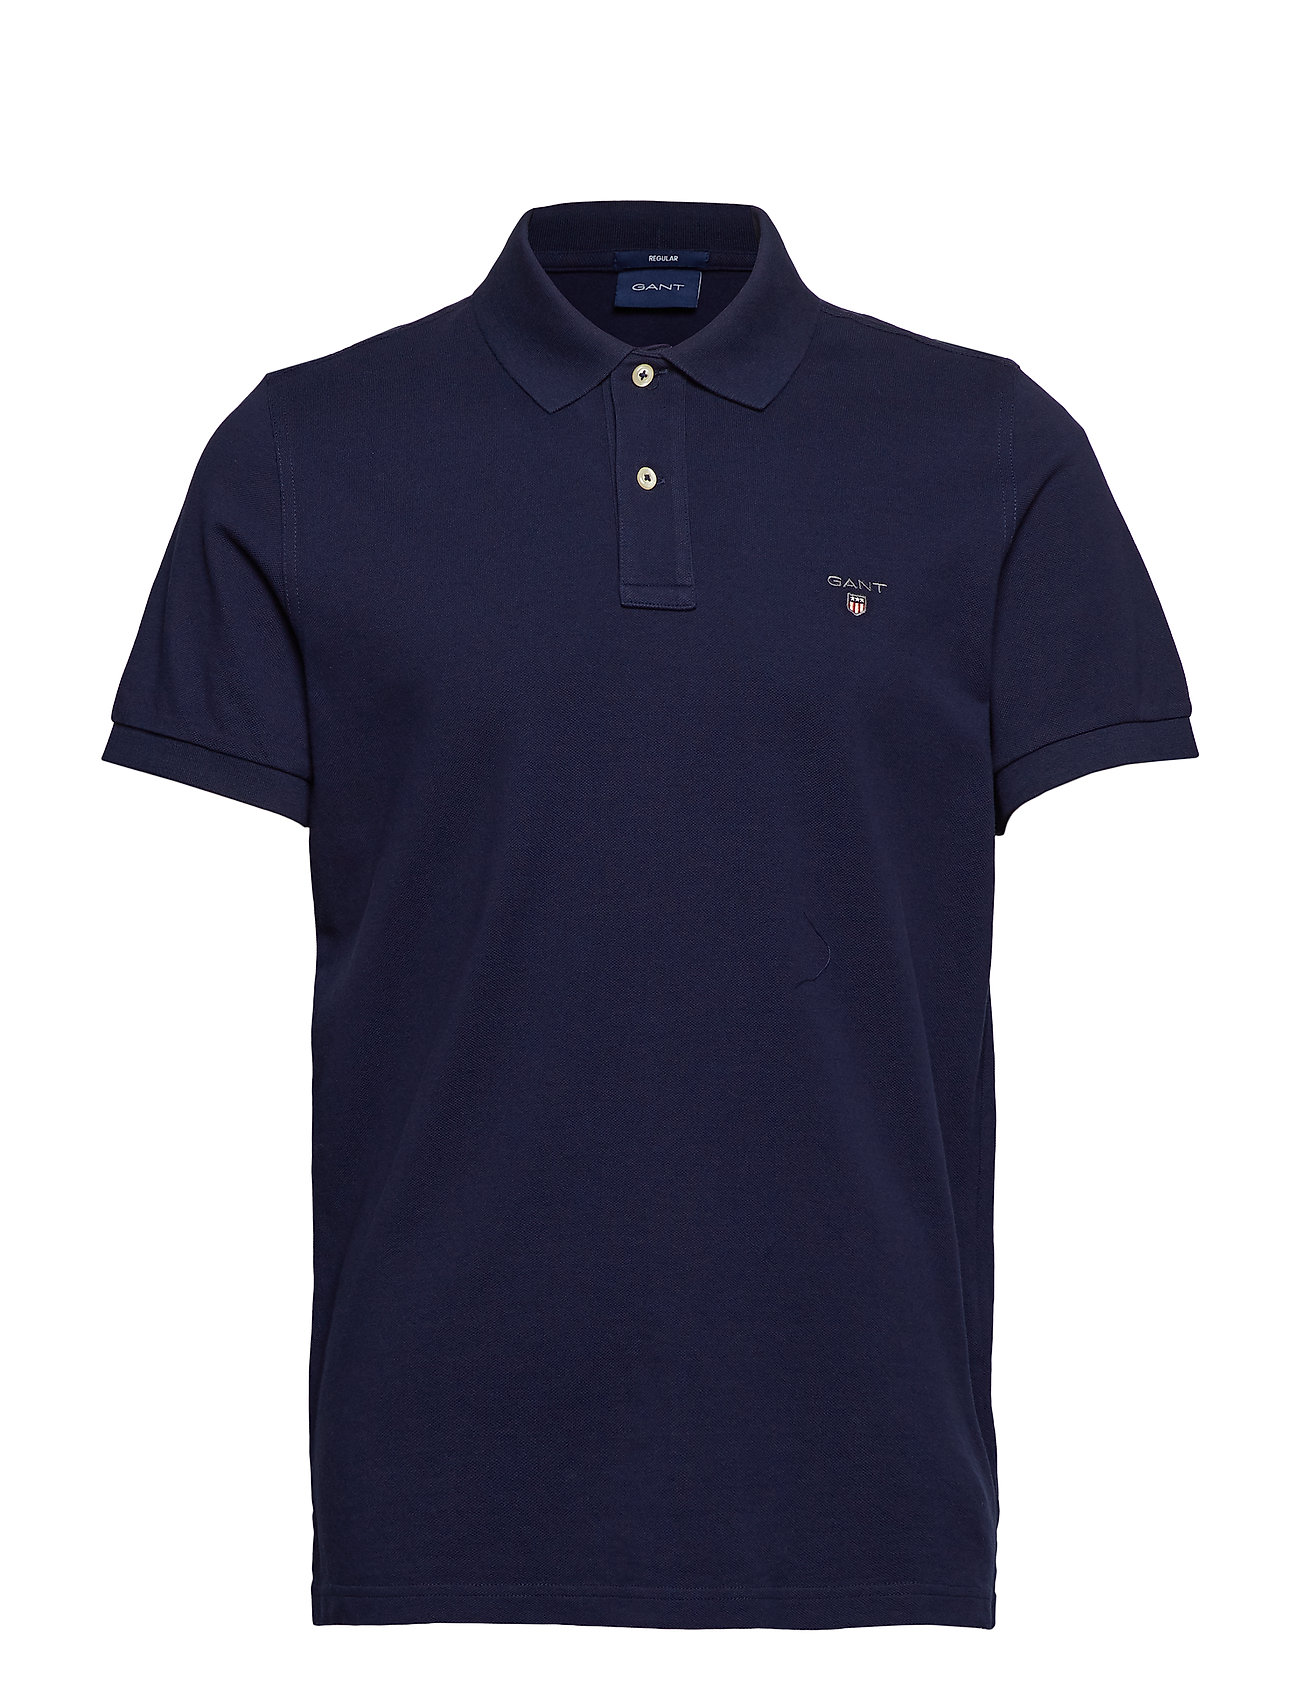 GANT THE ORIGINAL PIQUE SS RUGGER - EVENING BLUE